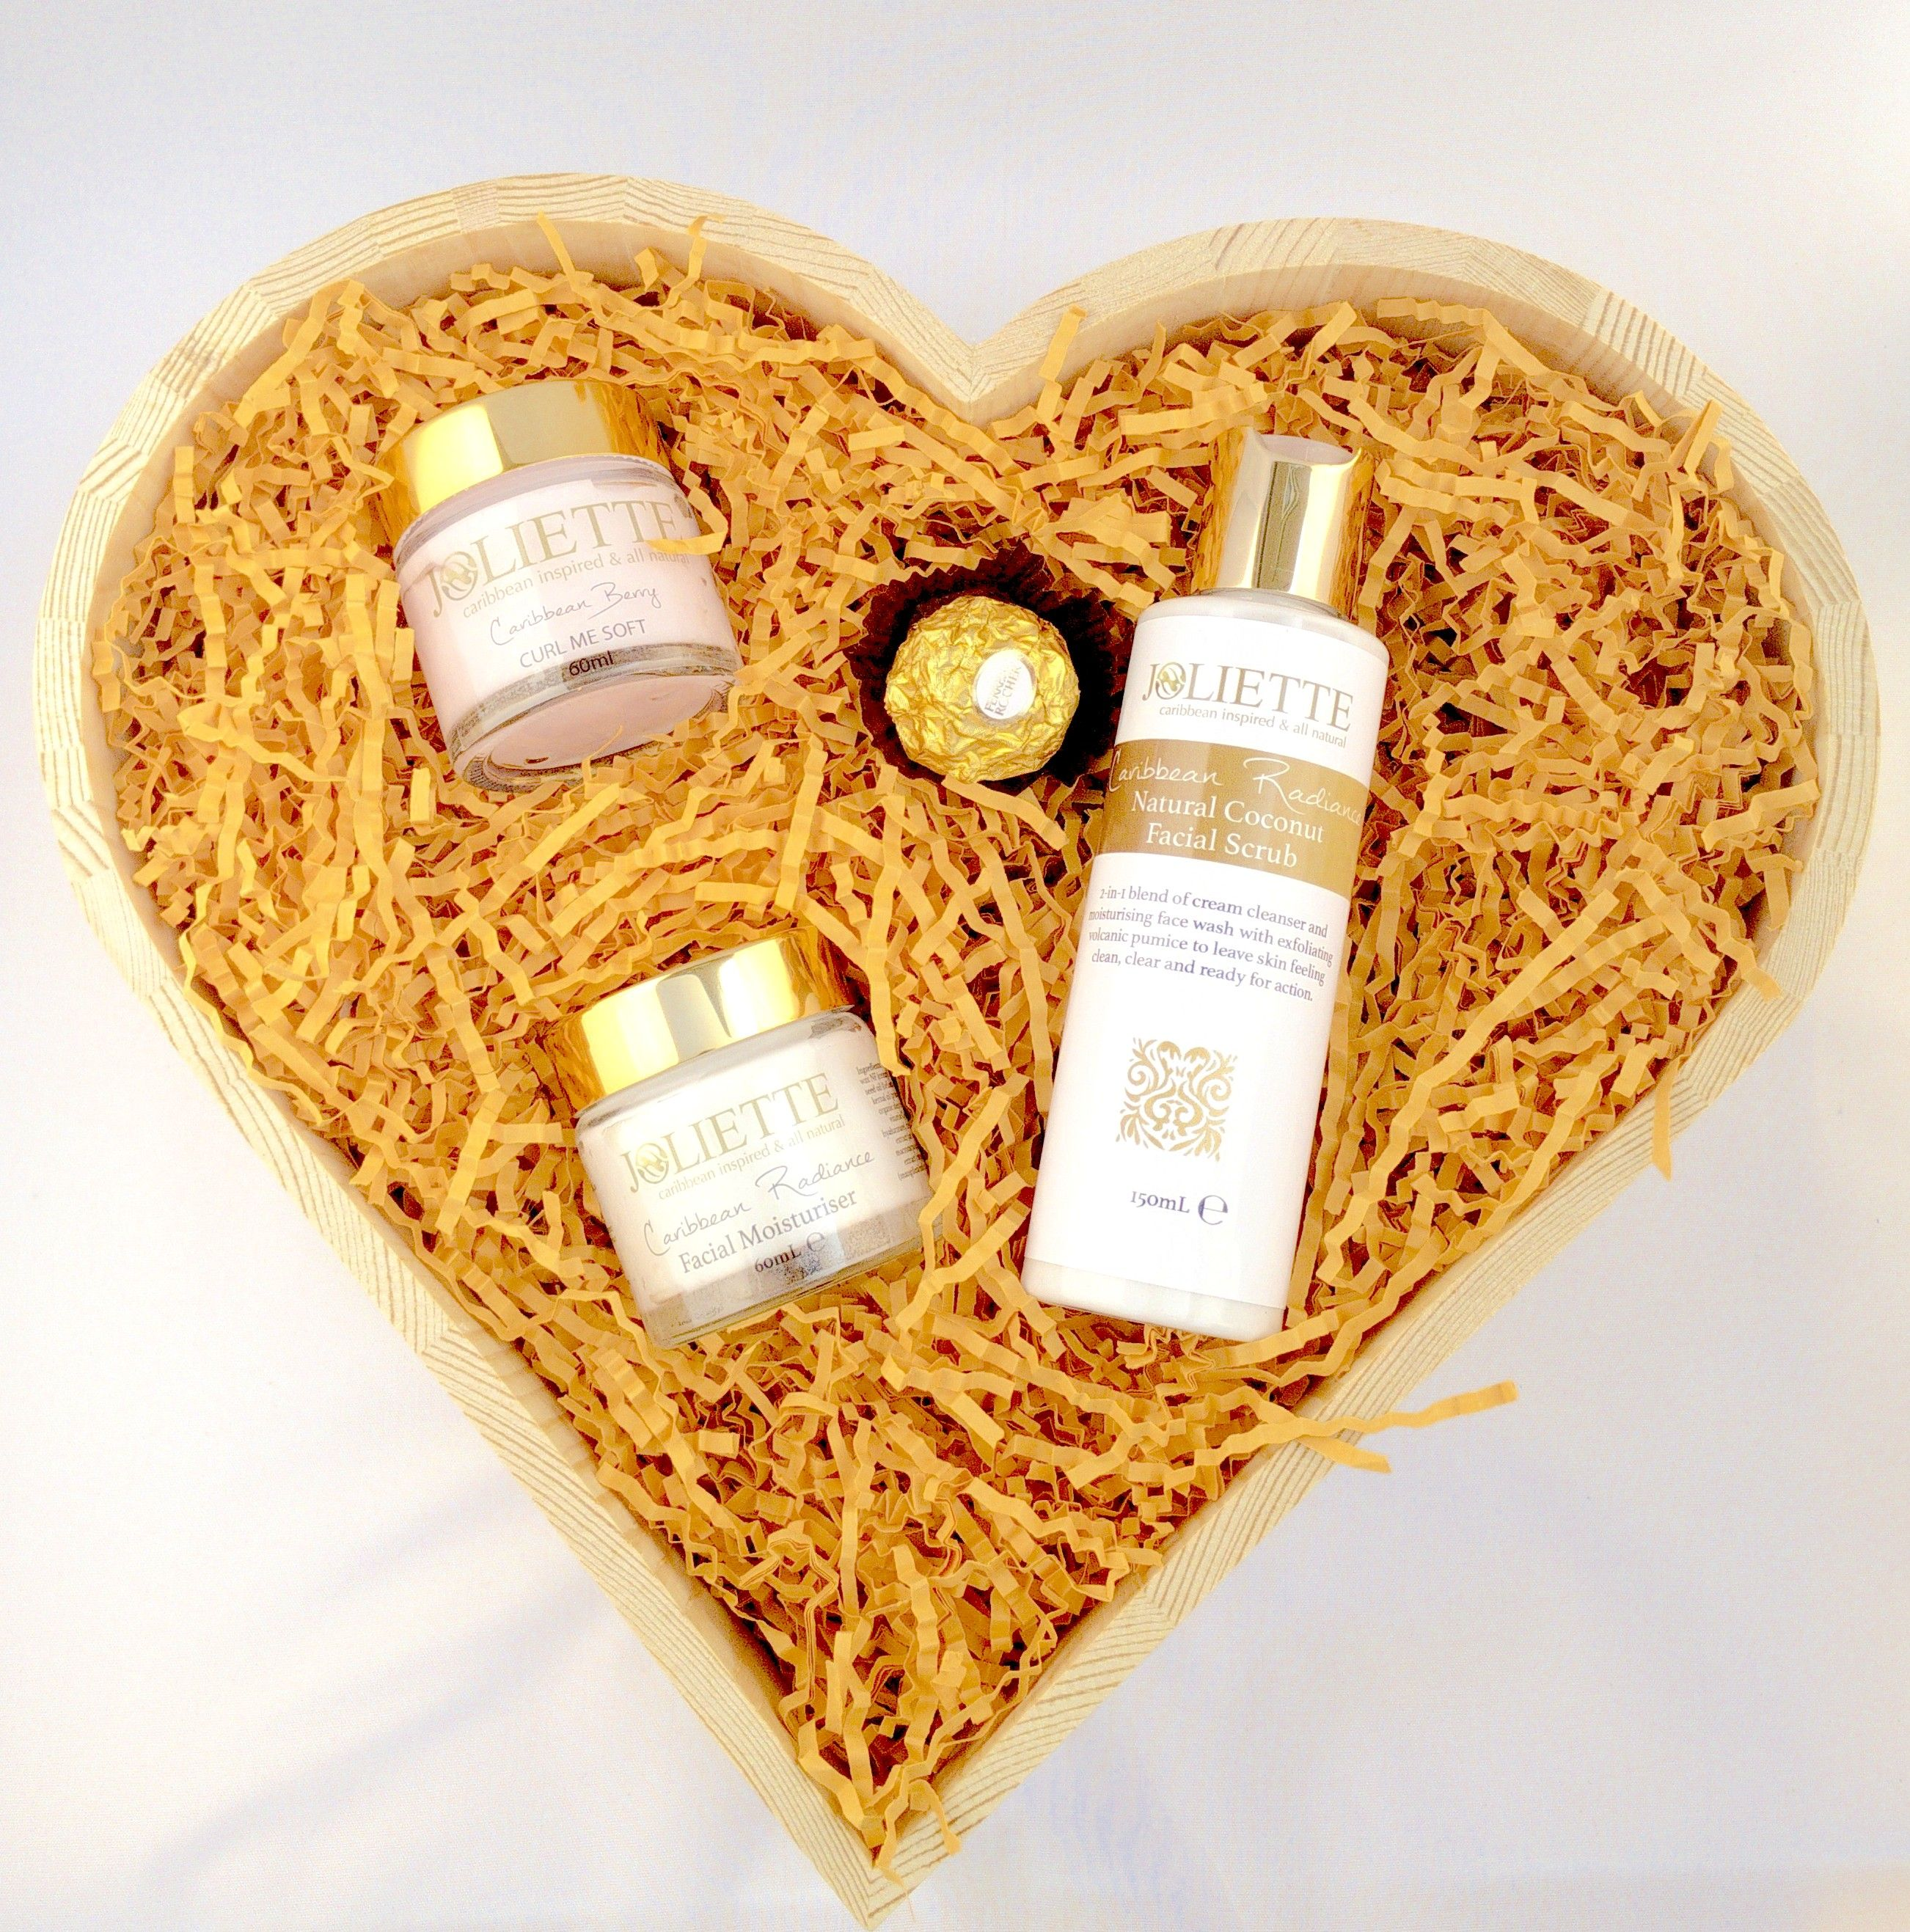 our most popular hamper from joliette £40 http://store.afrodeity.co